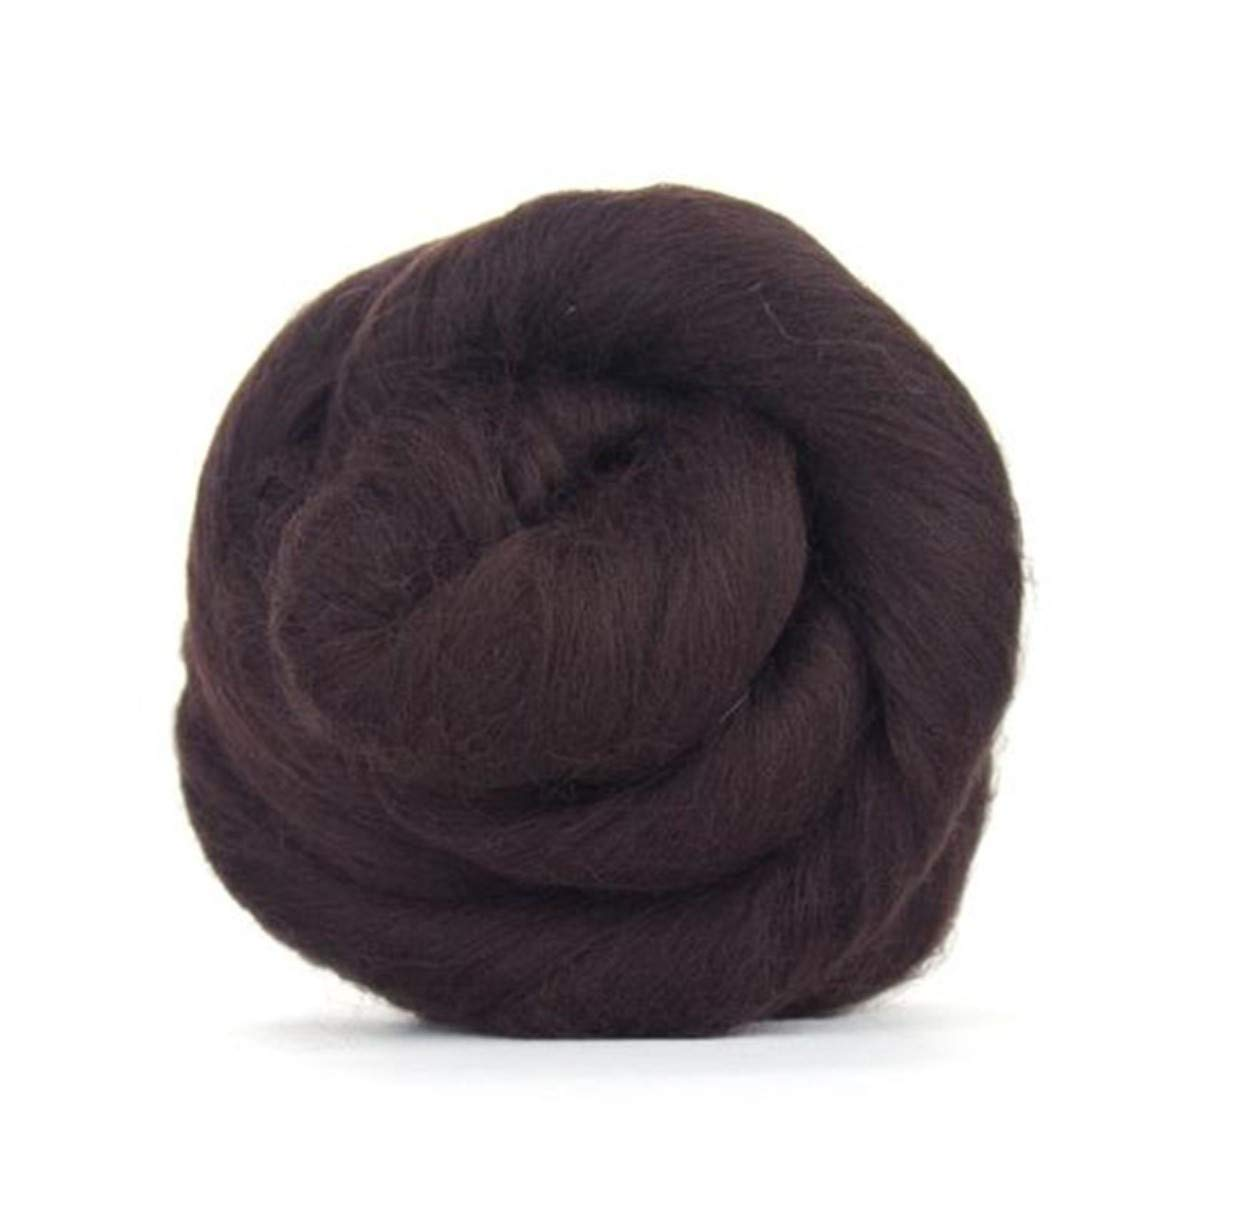 Dark Brown Merino Wool roving/Tops - 50gm. Great for Wet Felting/Needle Felting, and Hand Spinning Projects.